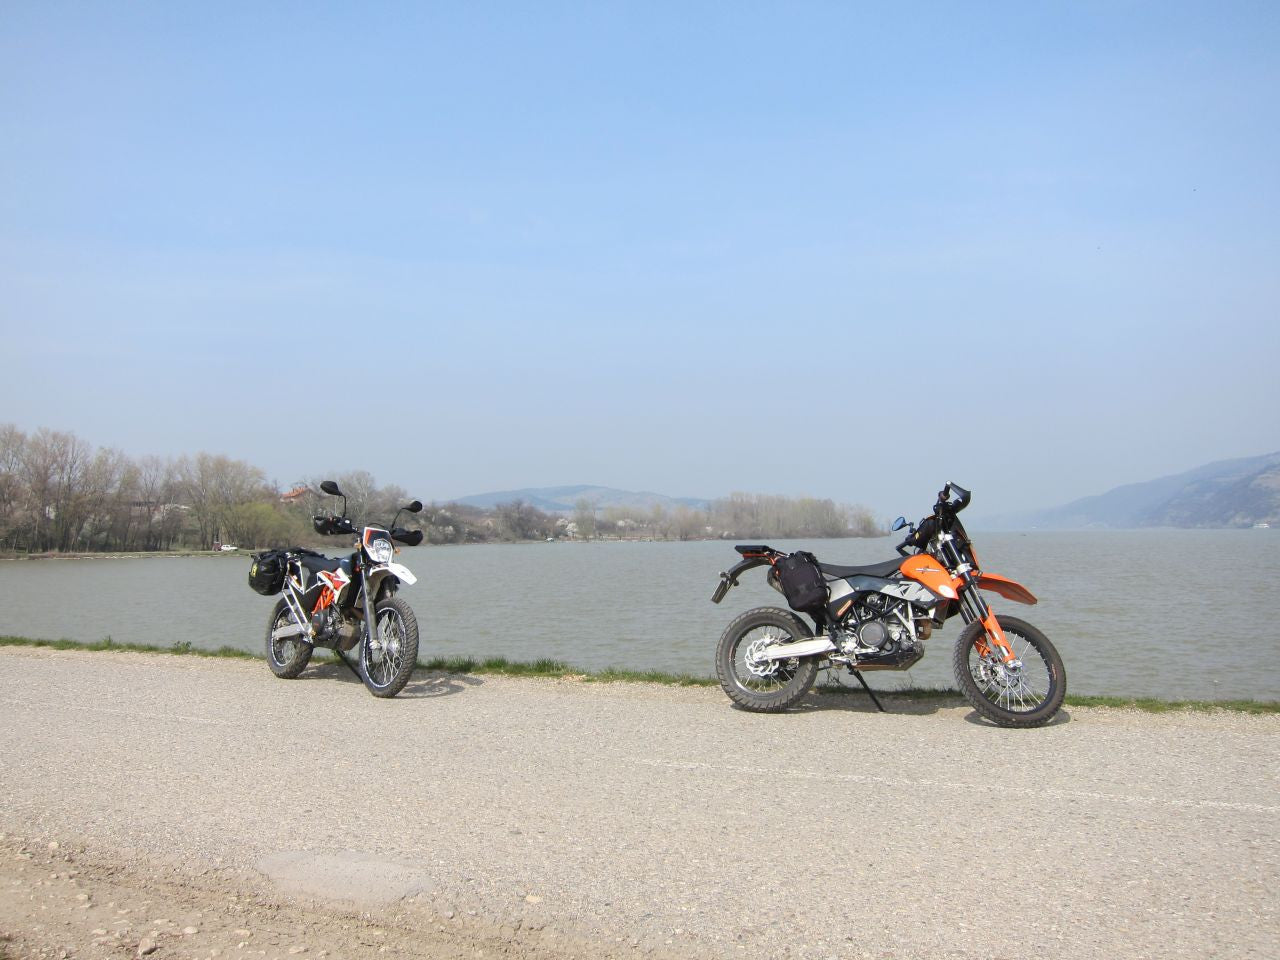 Ride pictures - March 2016. - Djerdap, Serbia